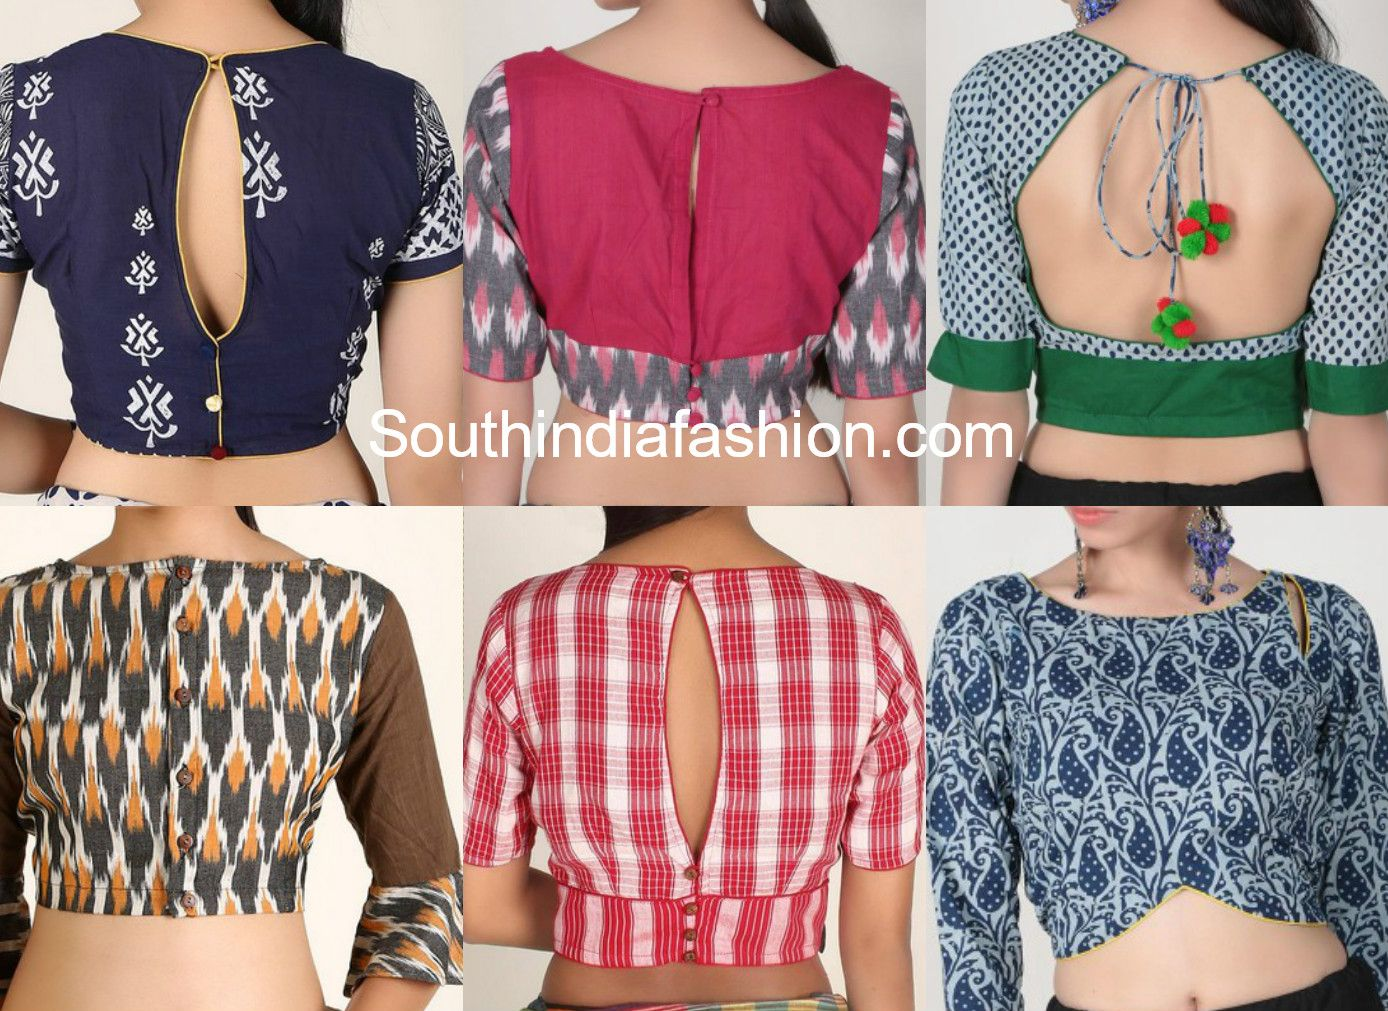 Cotton Saree Blouse Designs For Stylish And Trendy Look Cotton